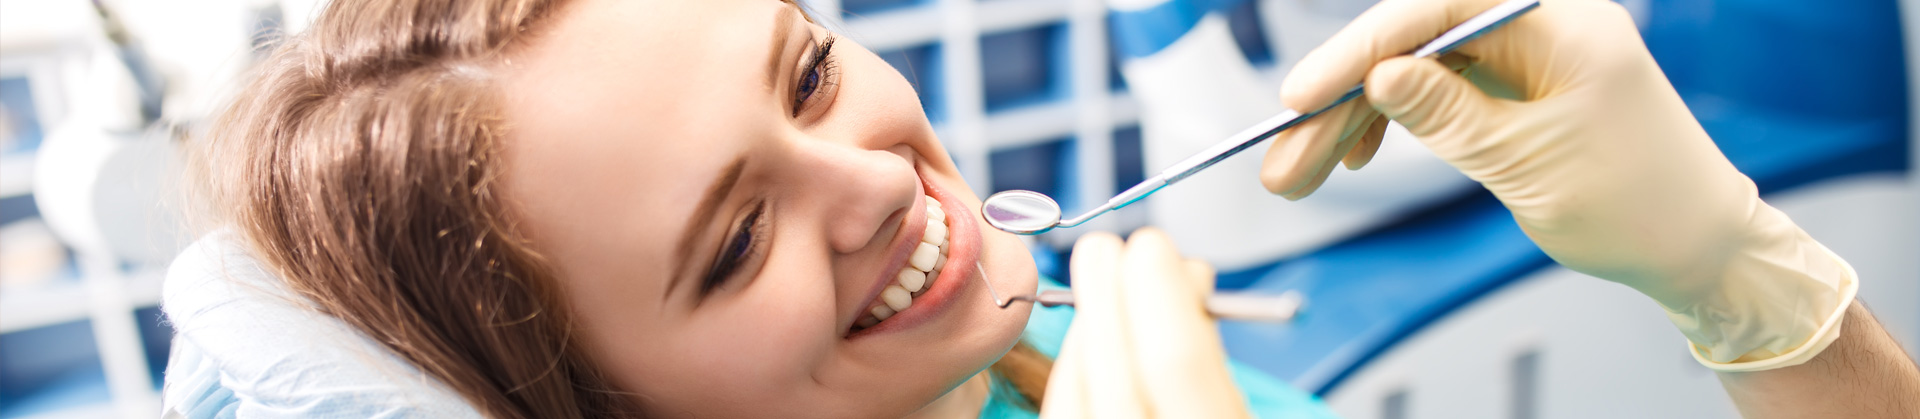 Smiling patient getting treatment at Dental clinic